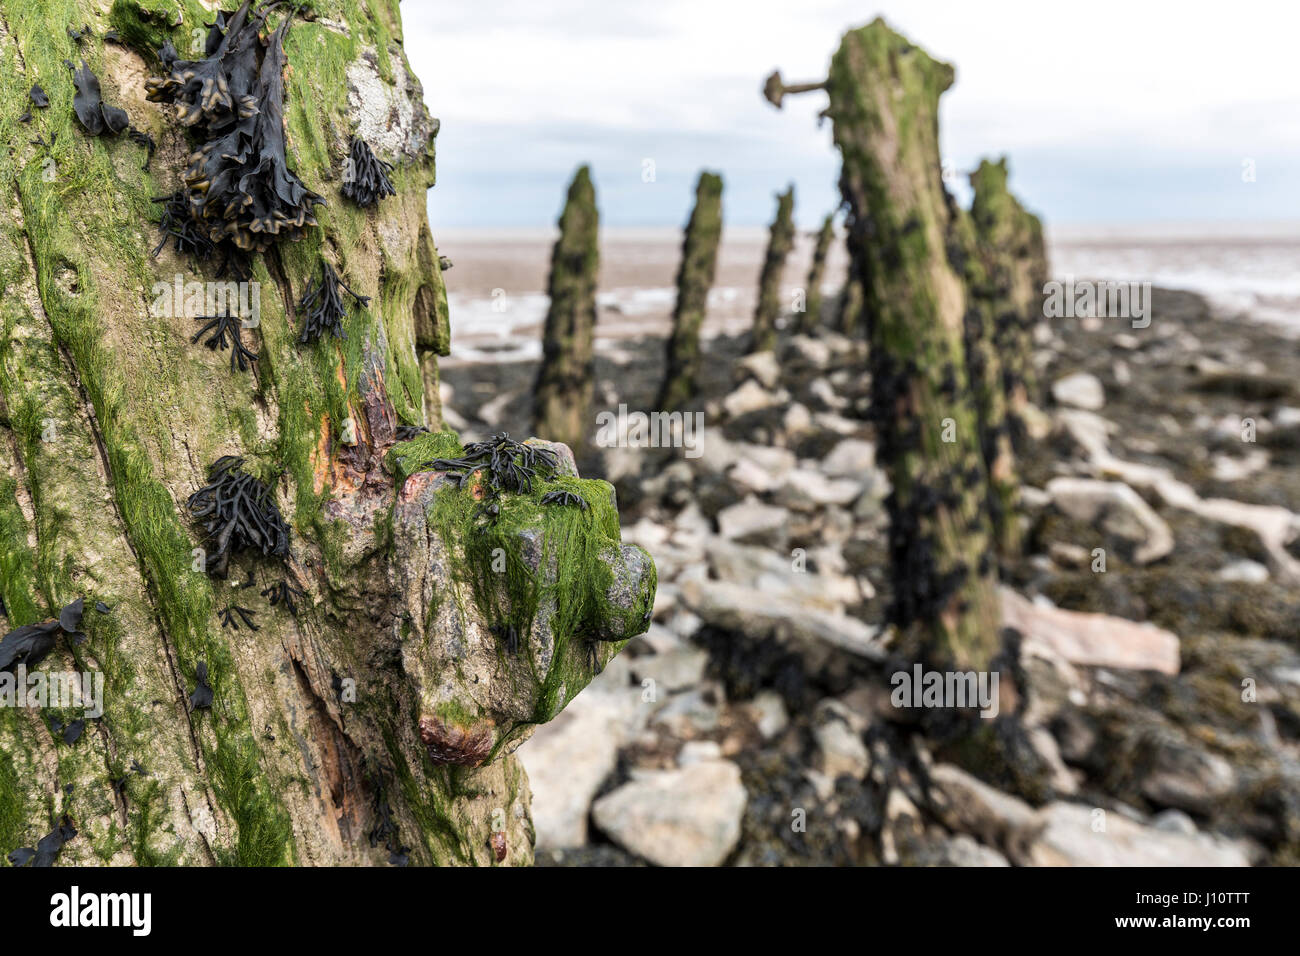 Eroded rotting wood from old pilings with rusting bolt head at Goldcliff on the Gwent Levels, Wales, UK Stock Photo